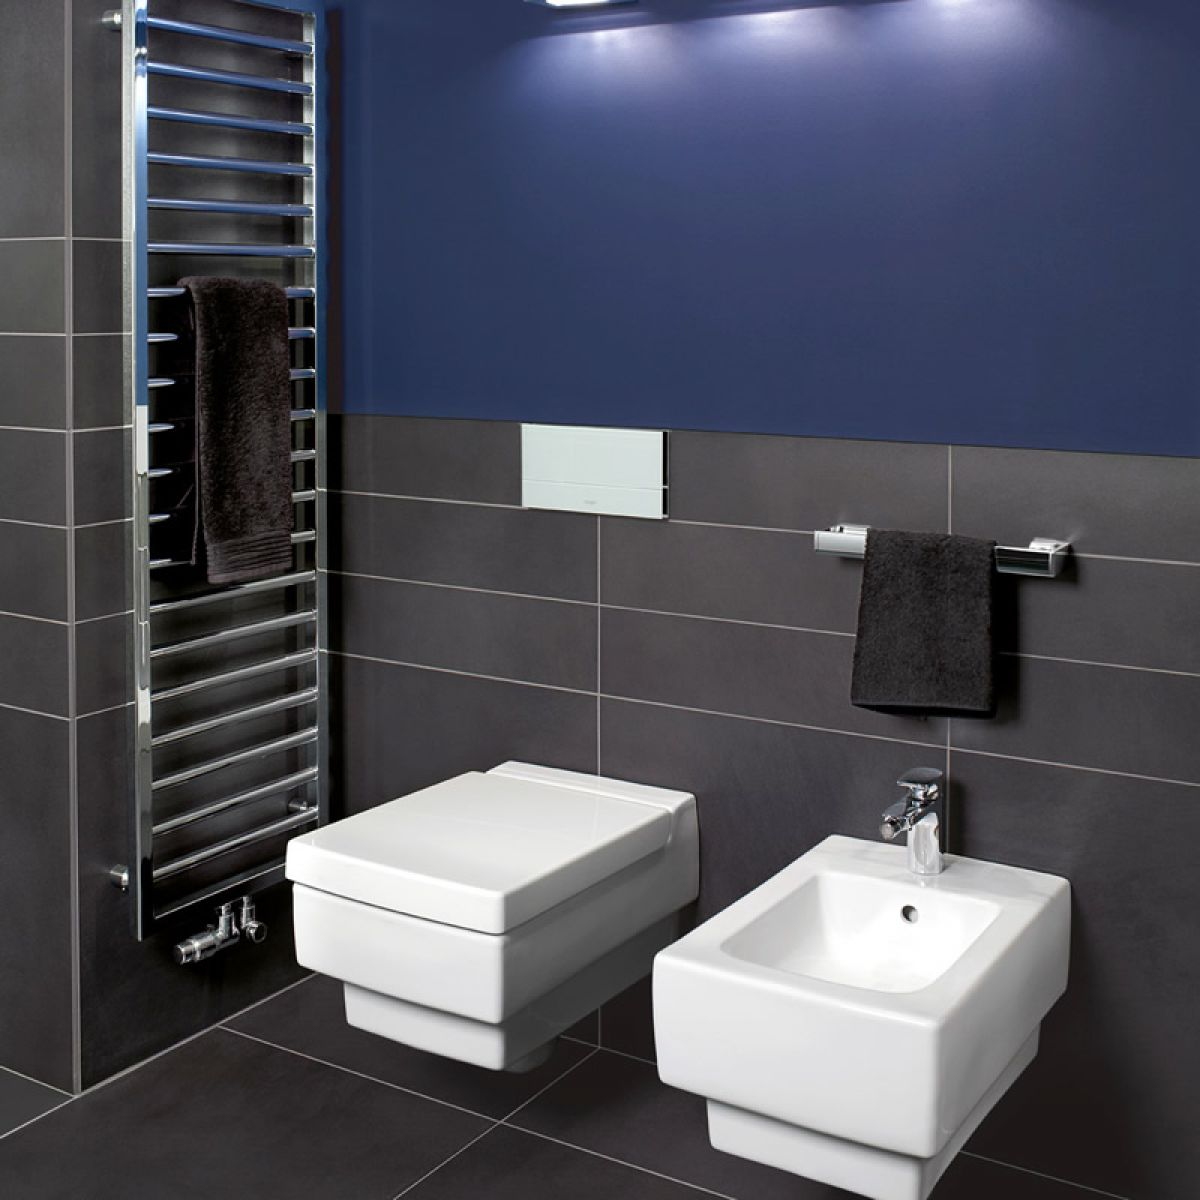 Villeroy boch bernina tiles 2394 30 x 60cm uk bathrooms - Villeroy y bosch ...